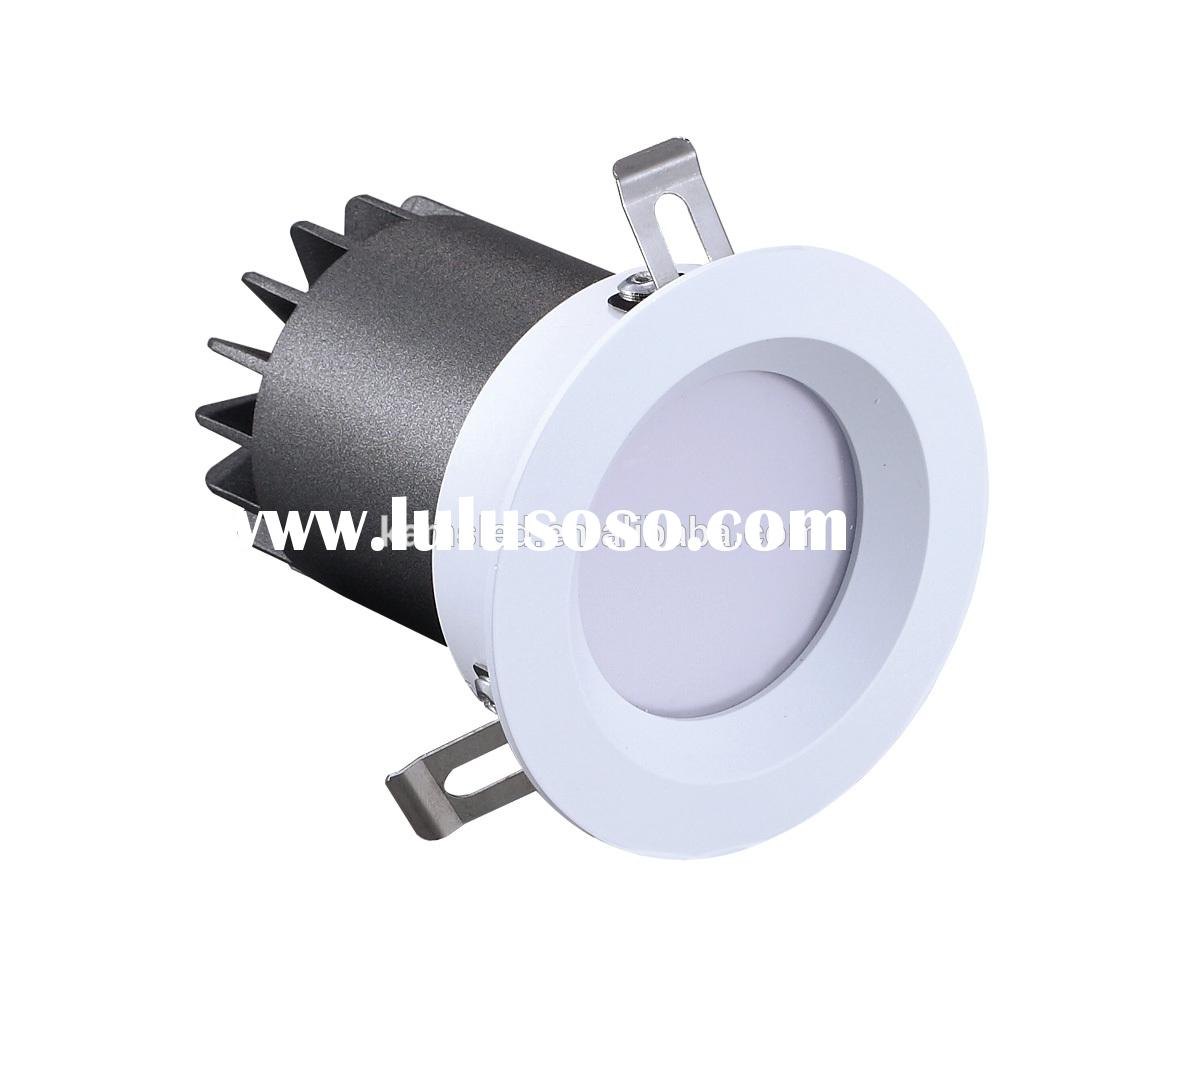 8W/ 10W Exterior Recessed Light LED COB Downlight, Overhead Lights LED